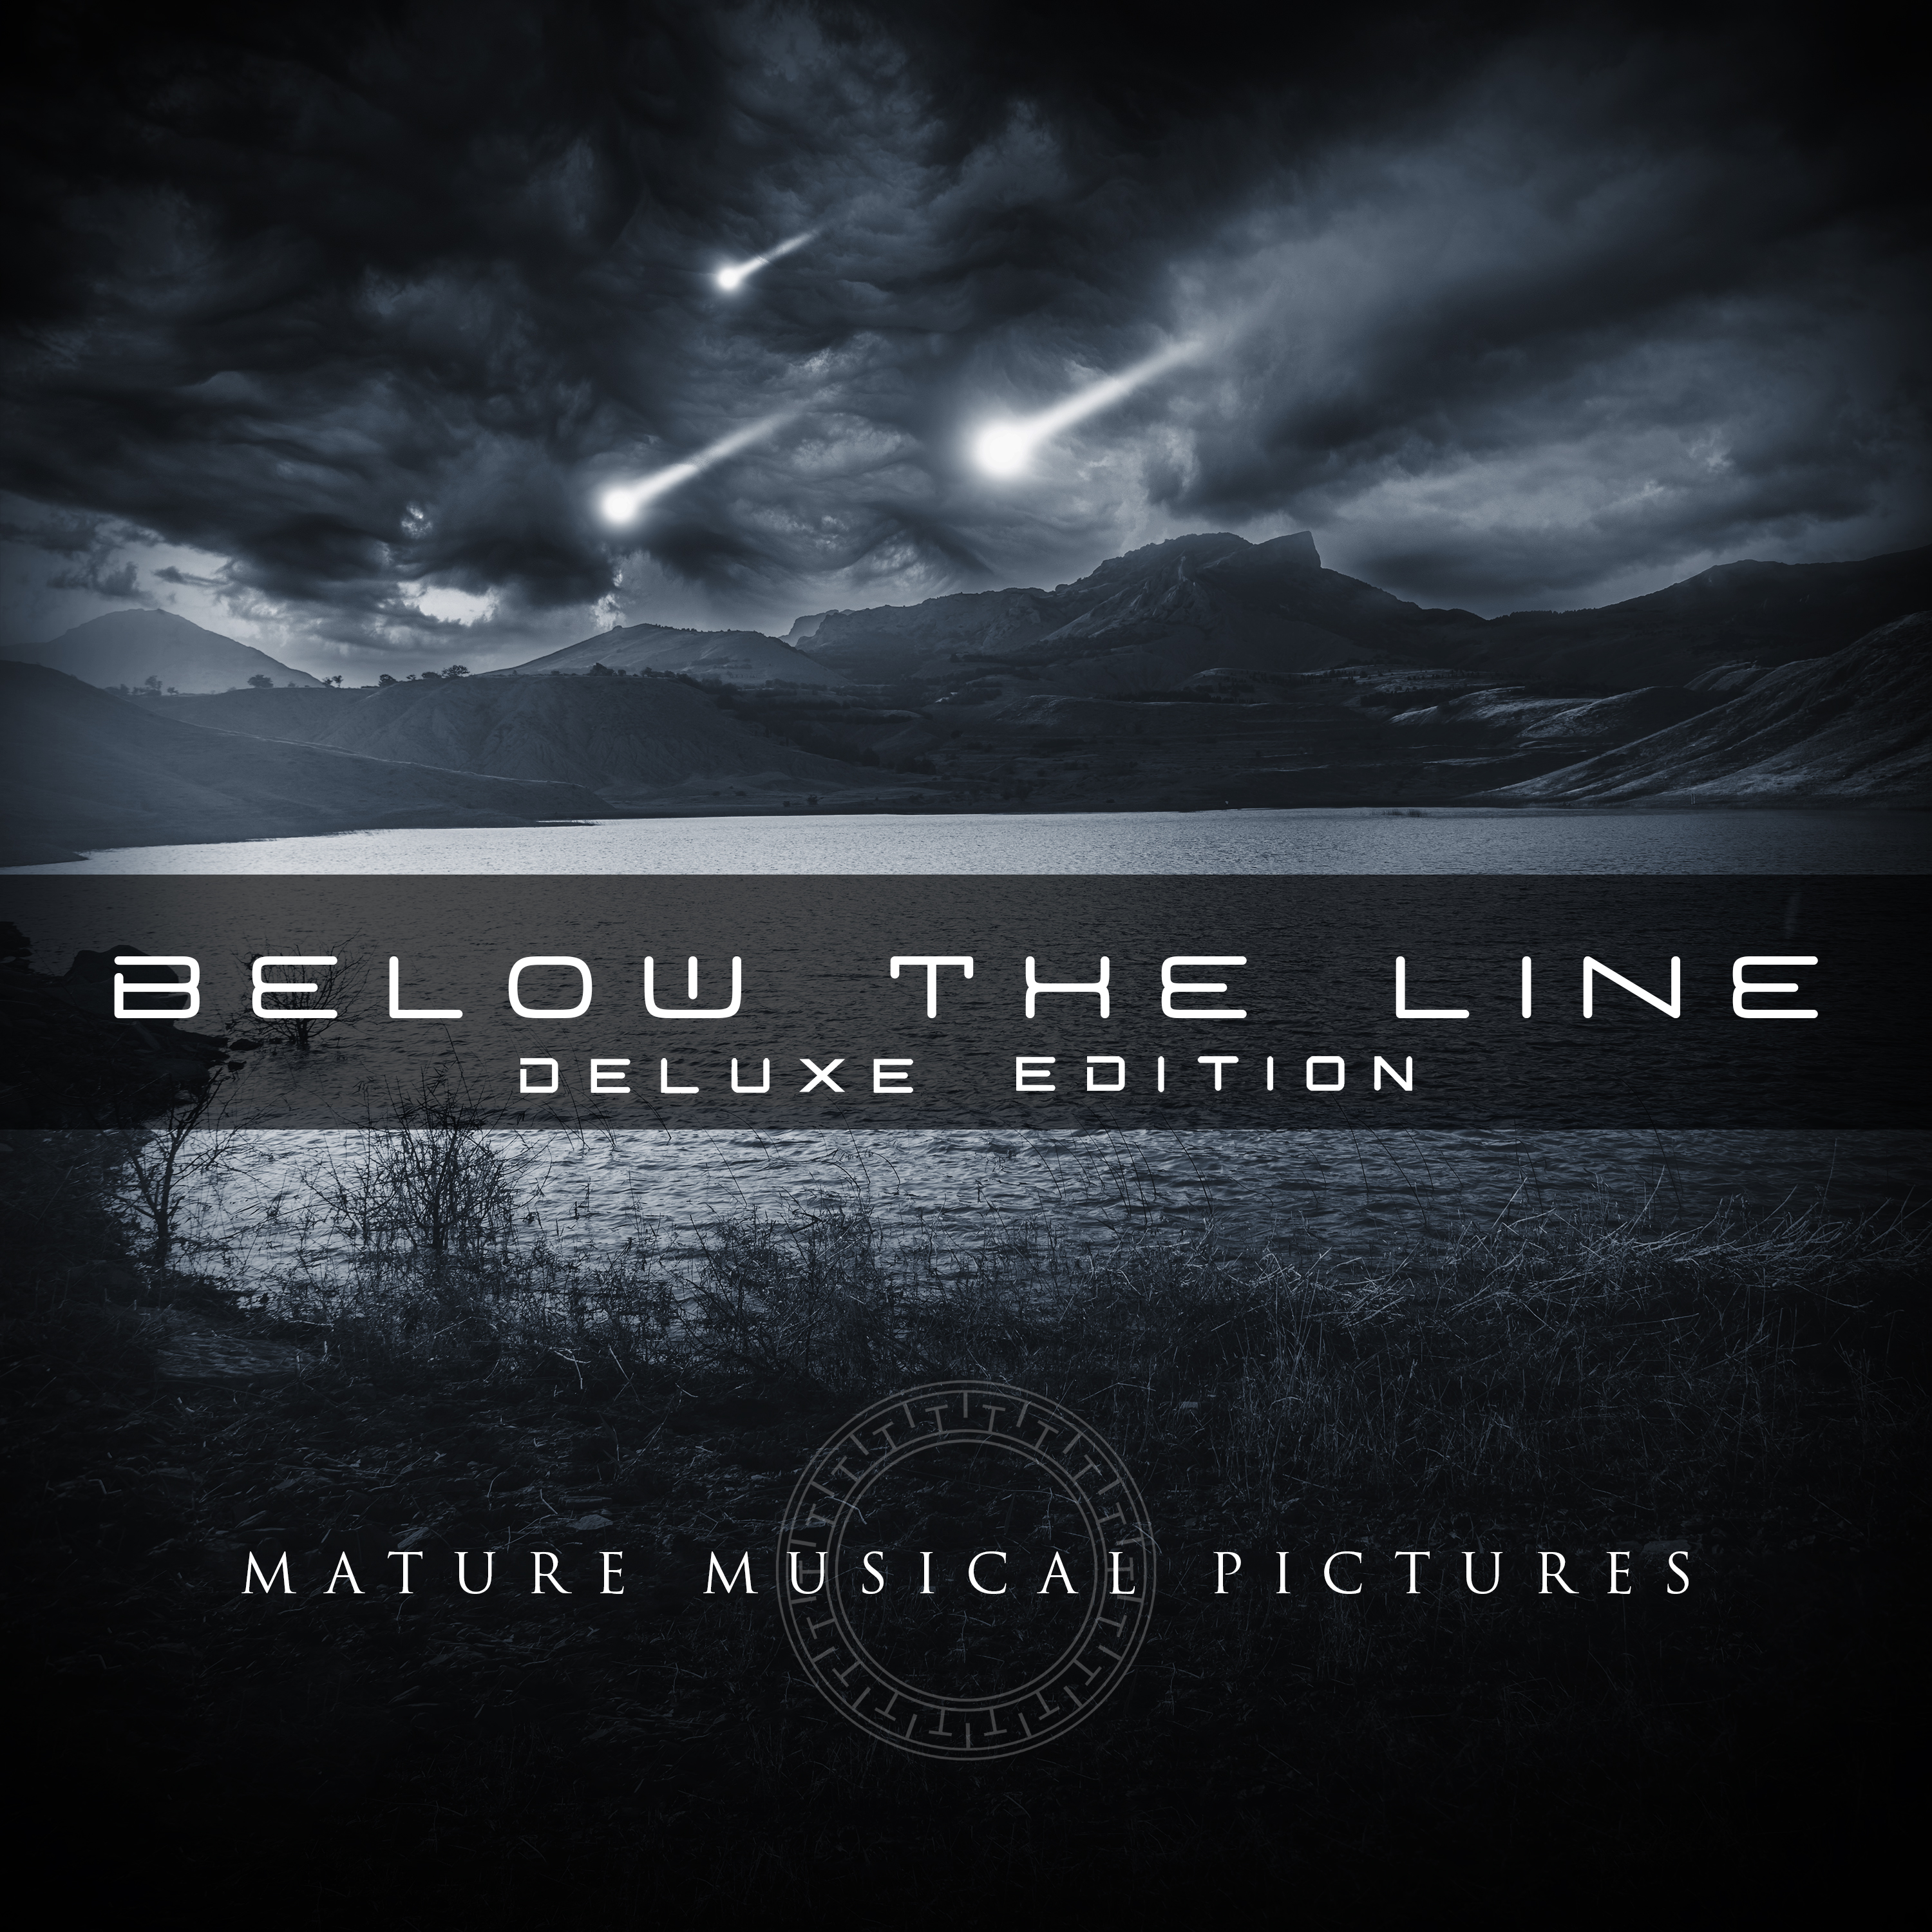 Below The Line (Deluxe Edition) Image